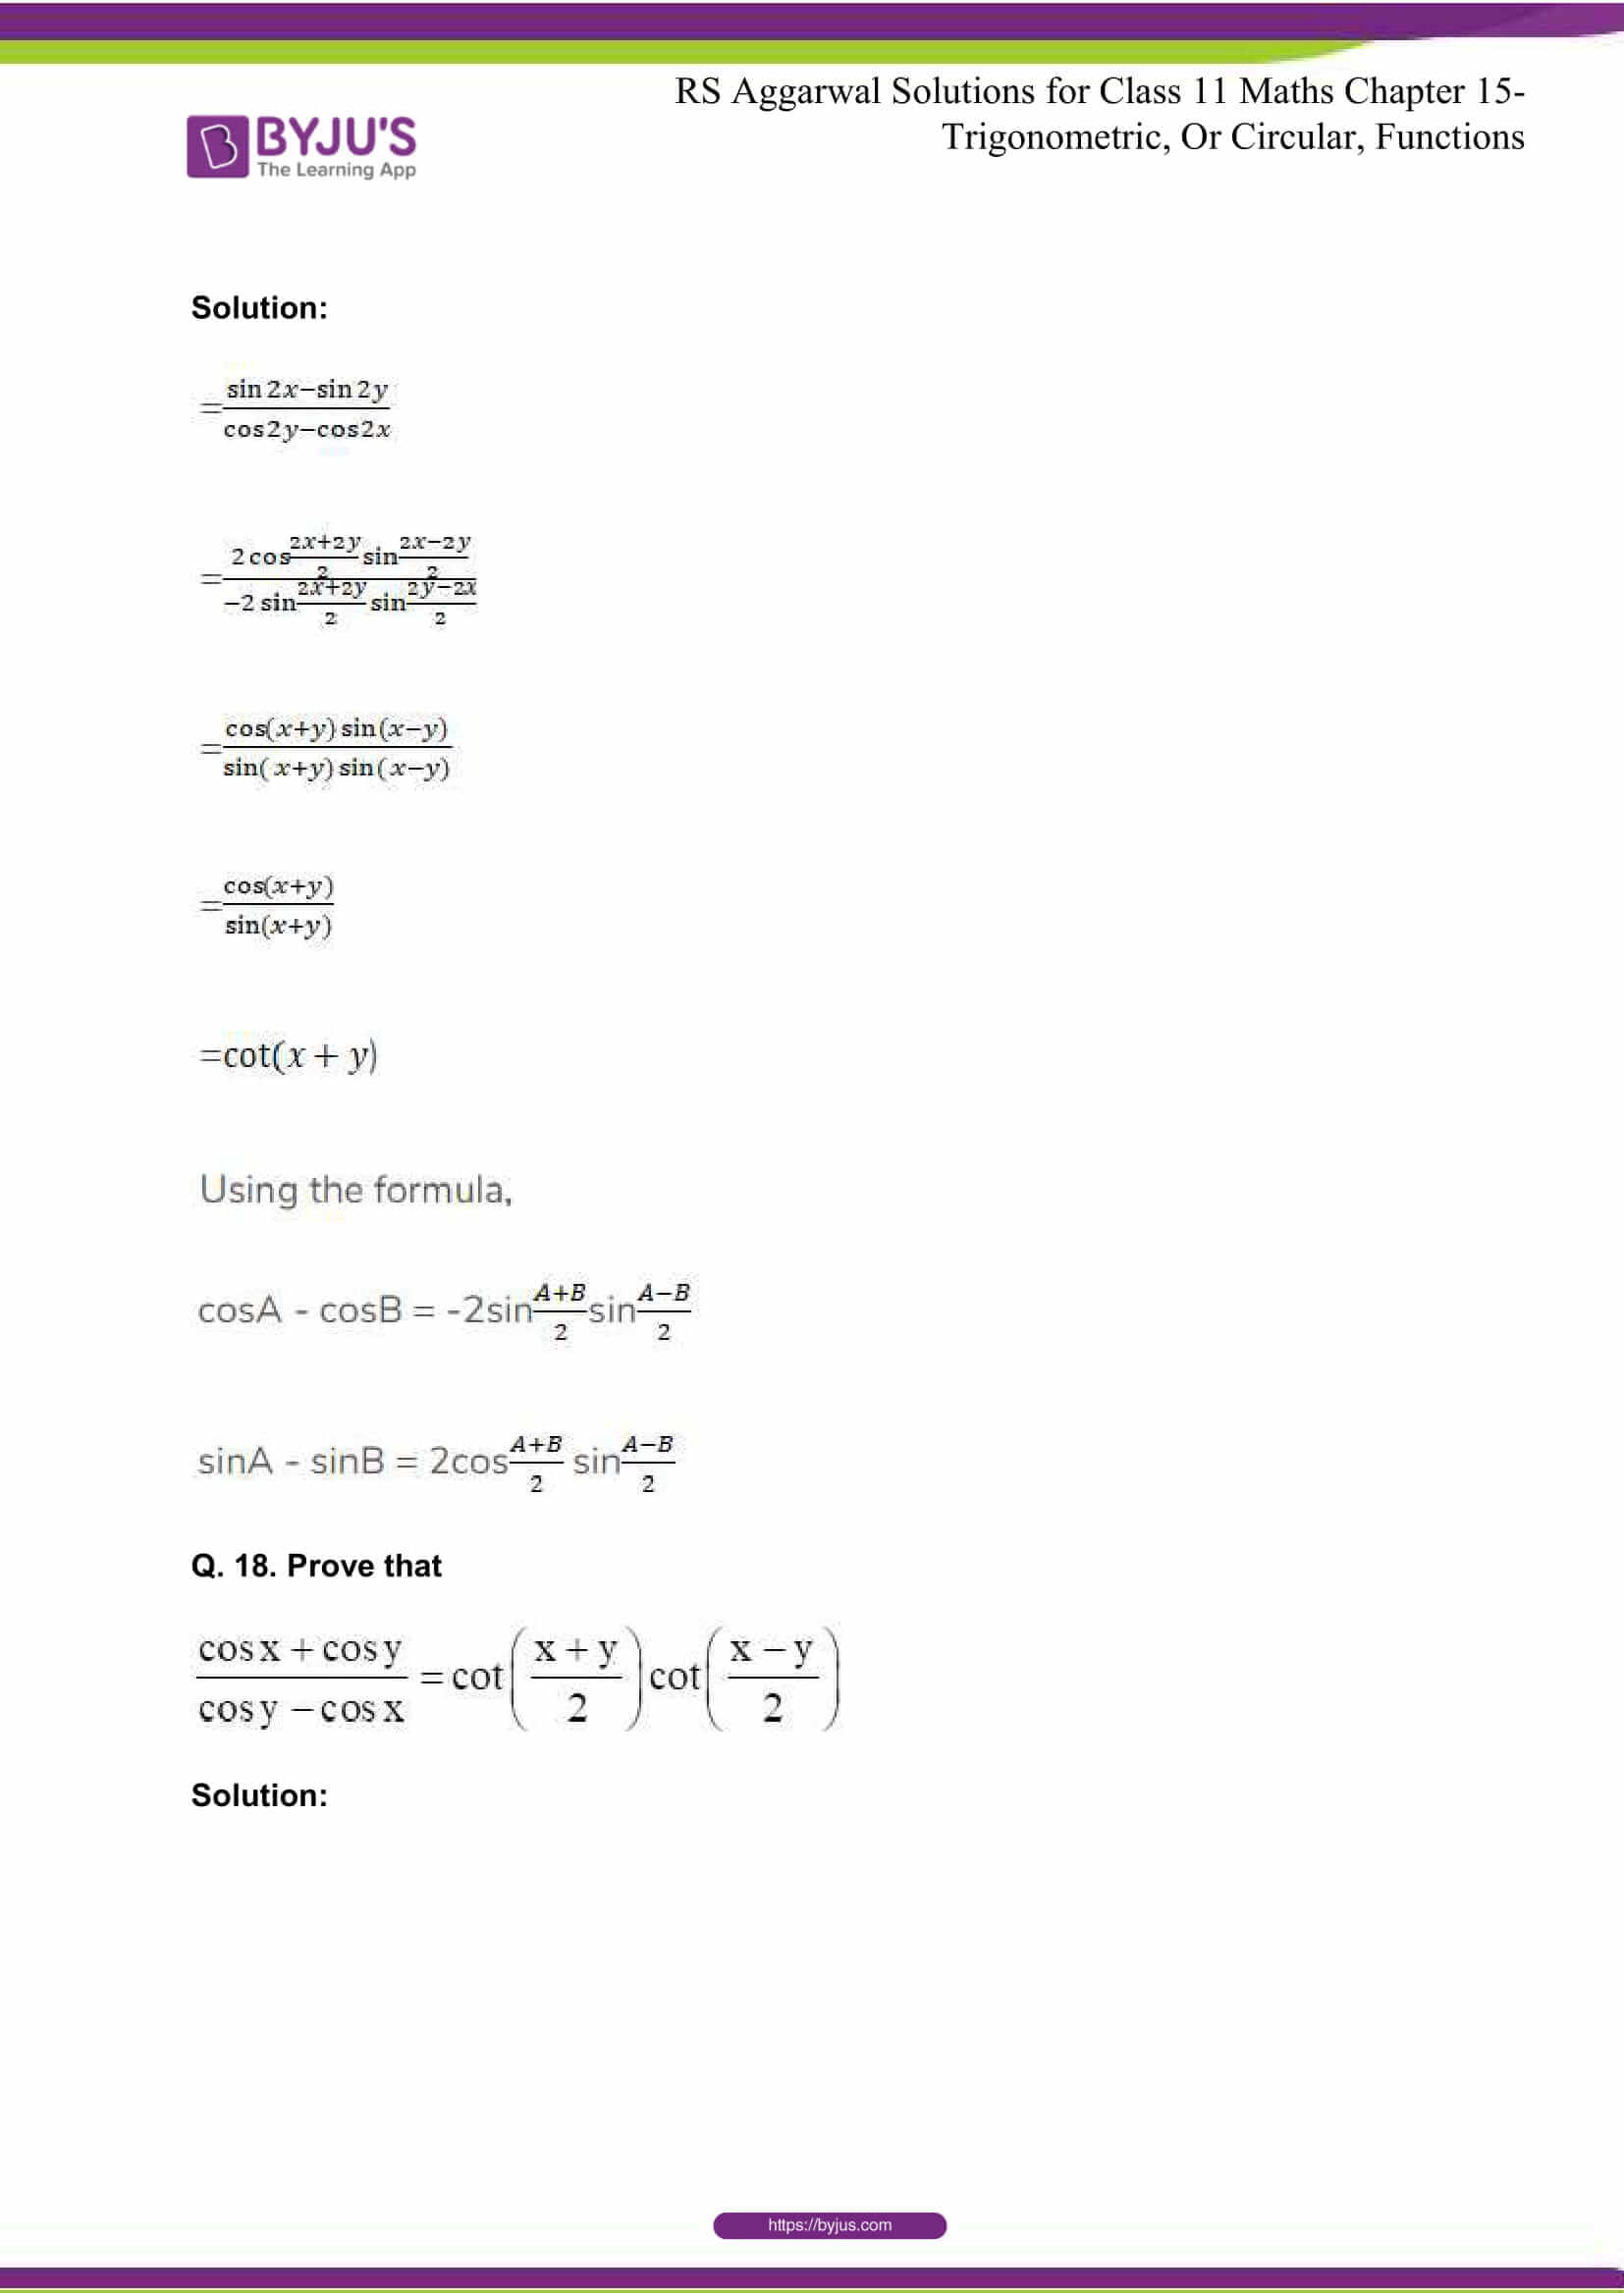 rsaggarwal solutions class 11 maths chapter 15 065